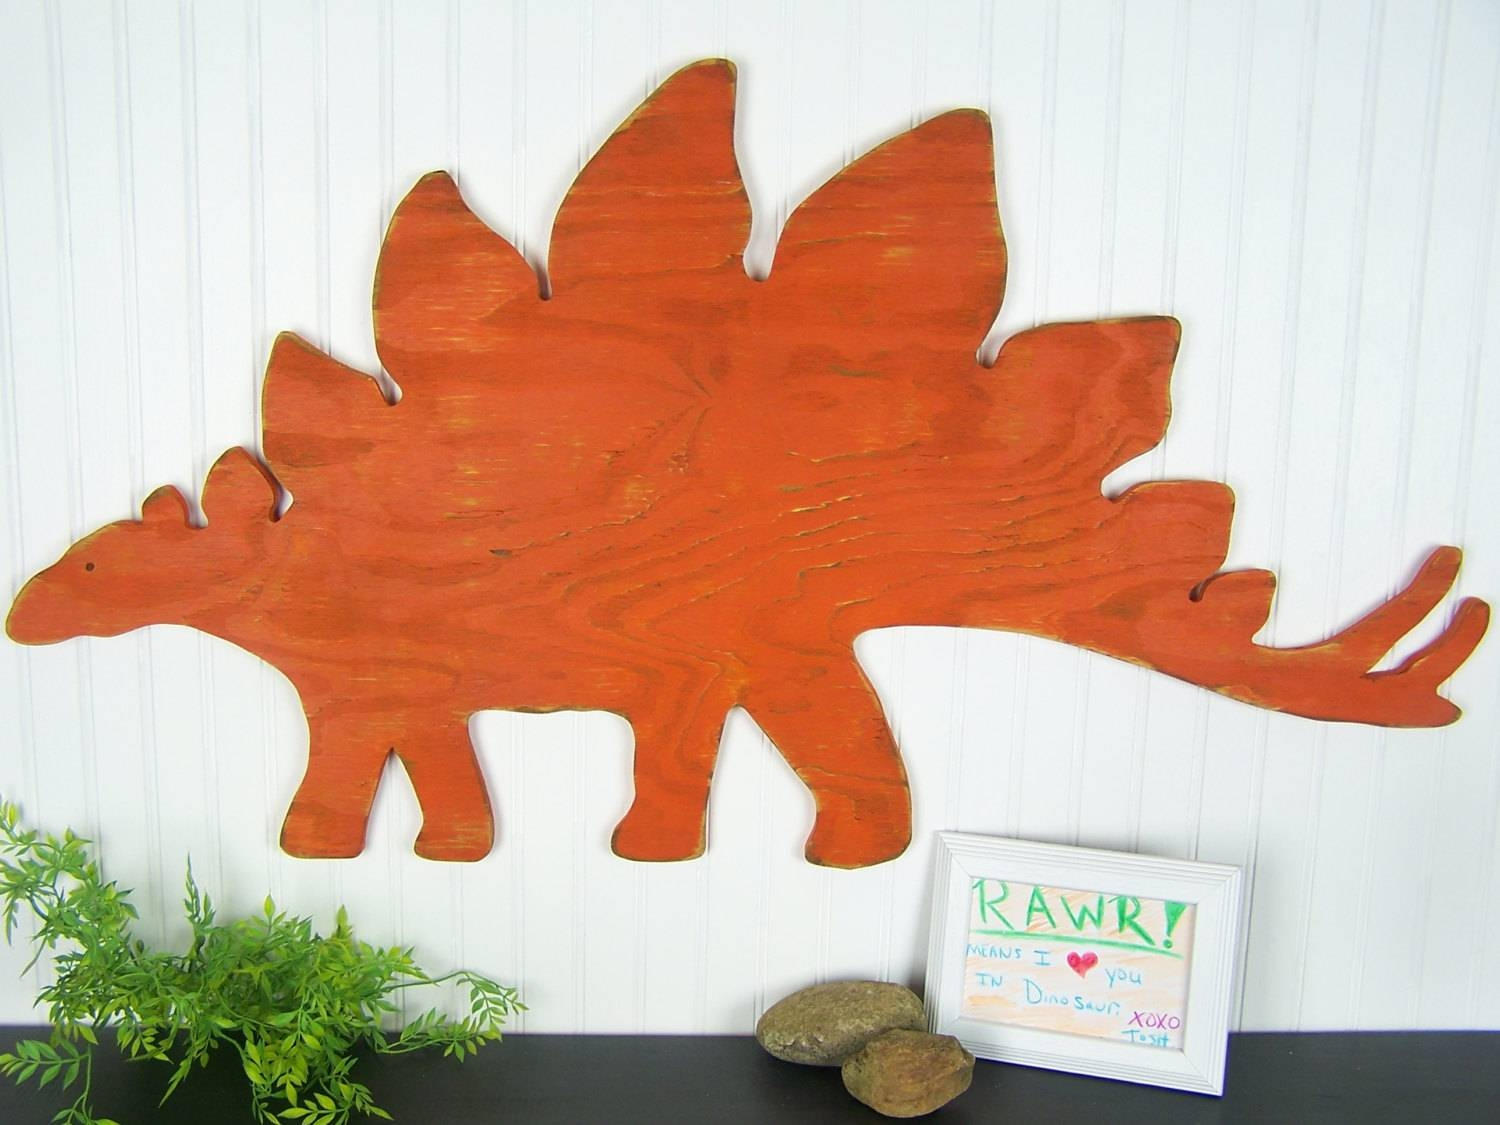 Dinosaur Decor Stegosaurus Orange Dinosaur Wall Art Rustic Regarding Best And Newest Dinosaur Wall Art For Kids (View 9 of 20)